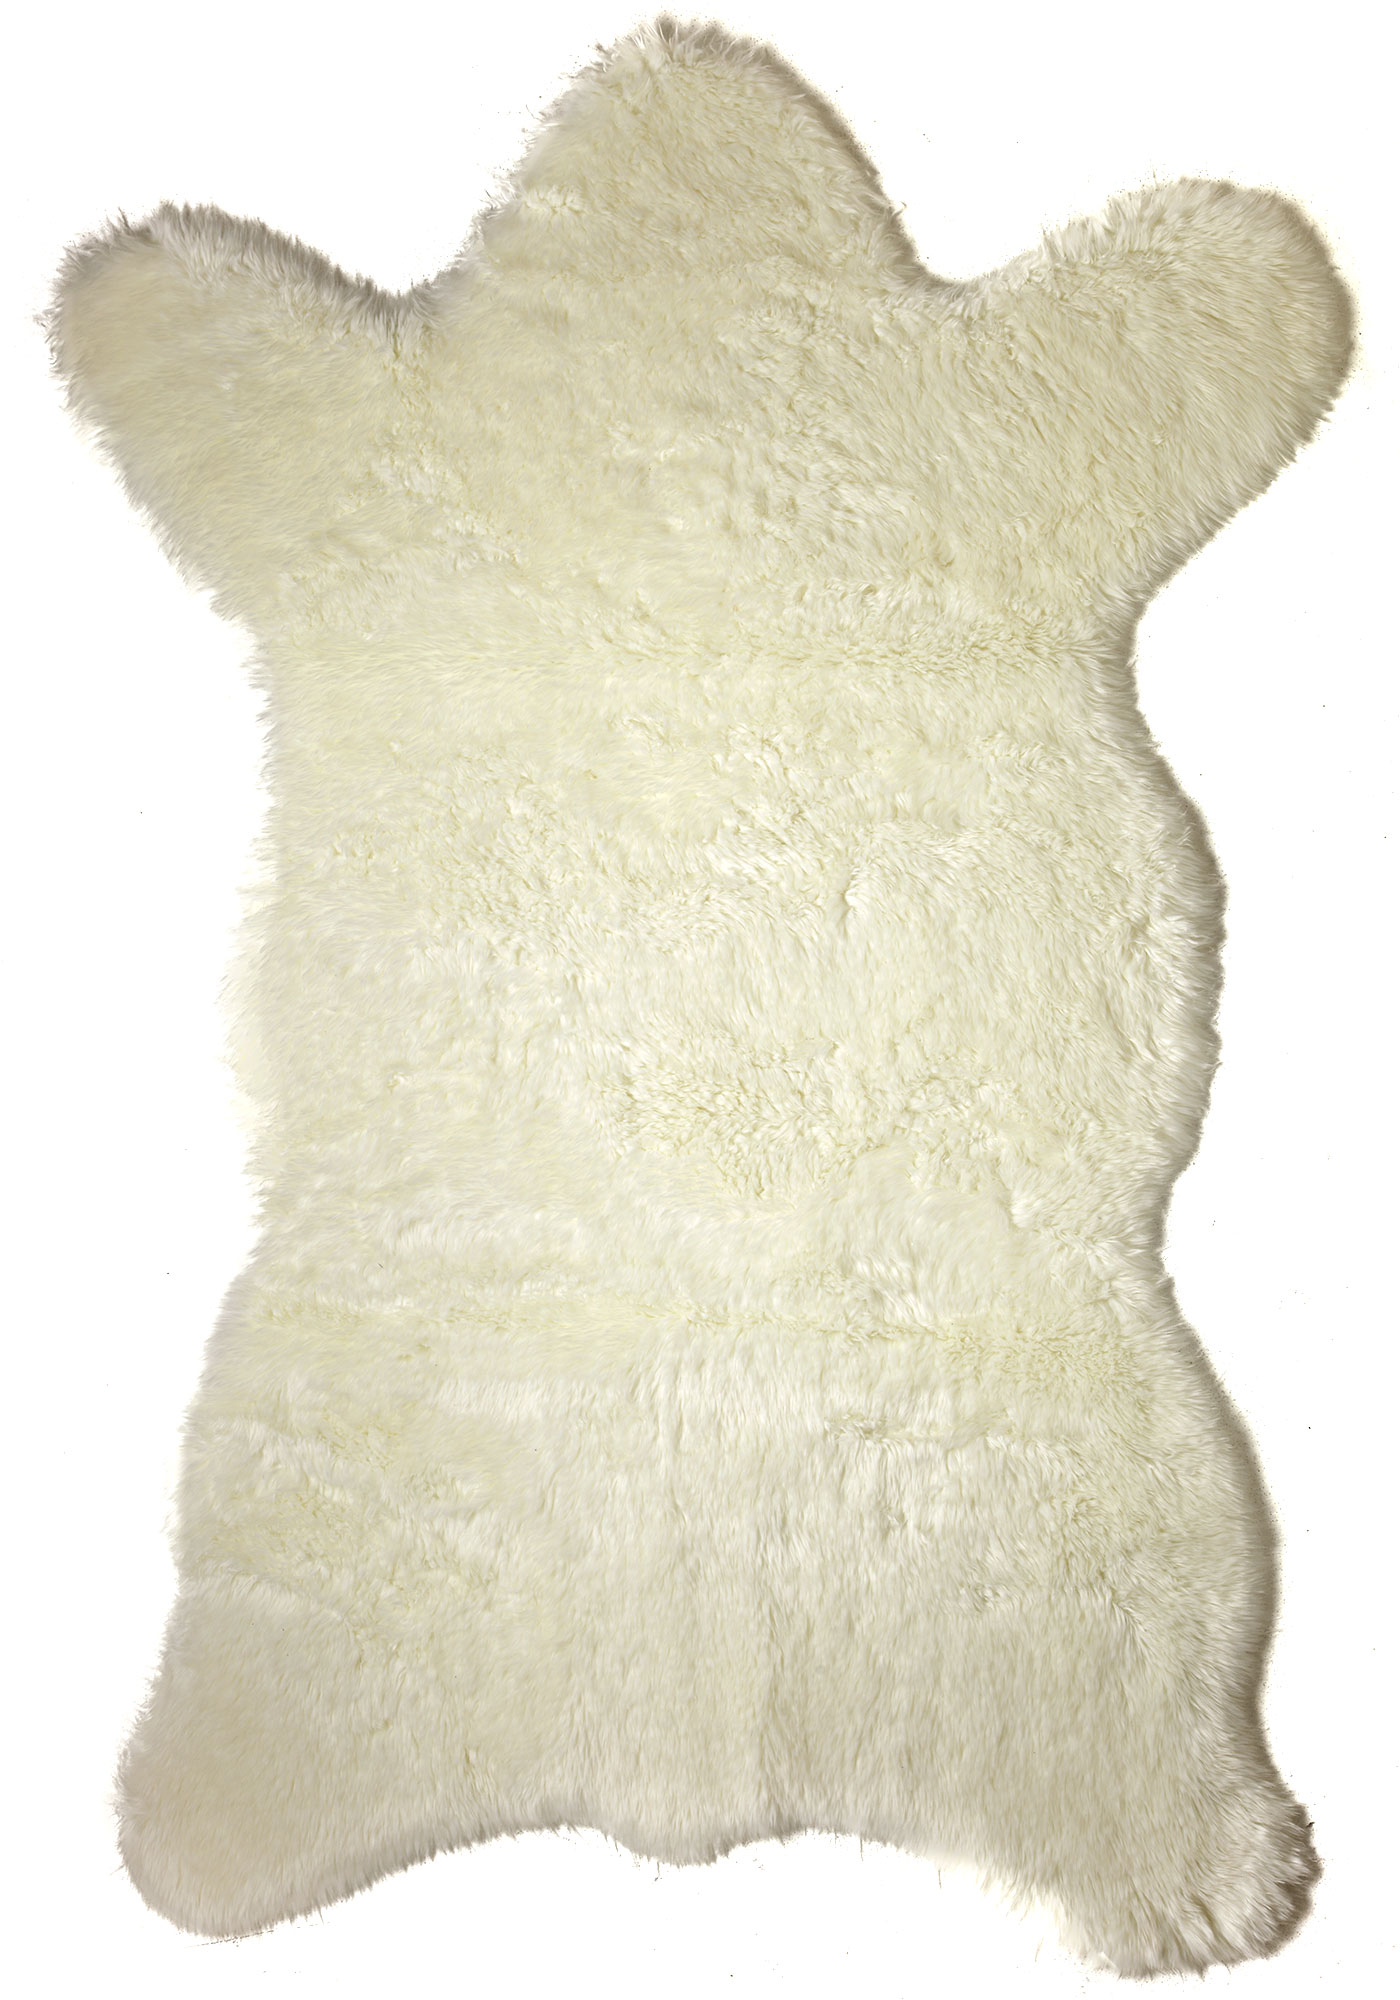 Fur Rug | White Sheepskin Rug